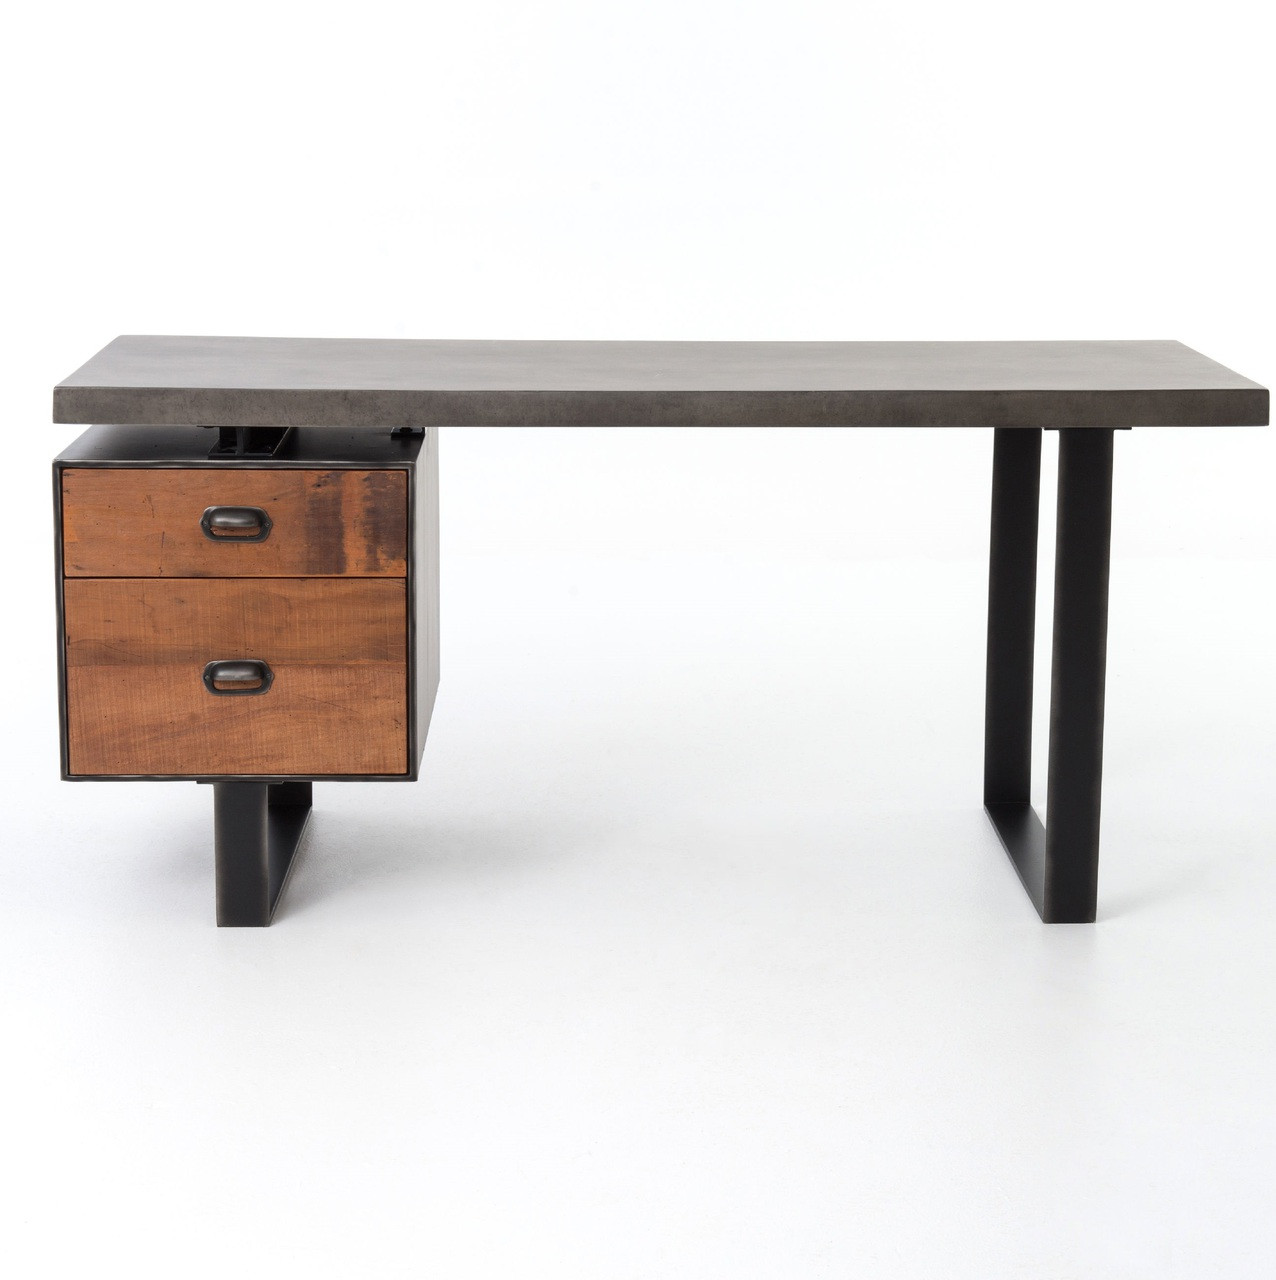 concrete and wood furniture. Clapton Industrial Concrete + Wood Desk With File Drawer And Furniture G